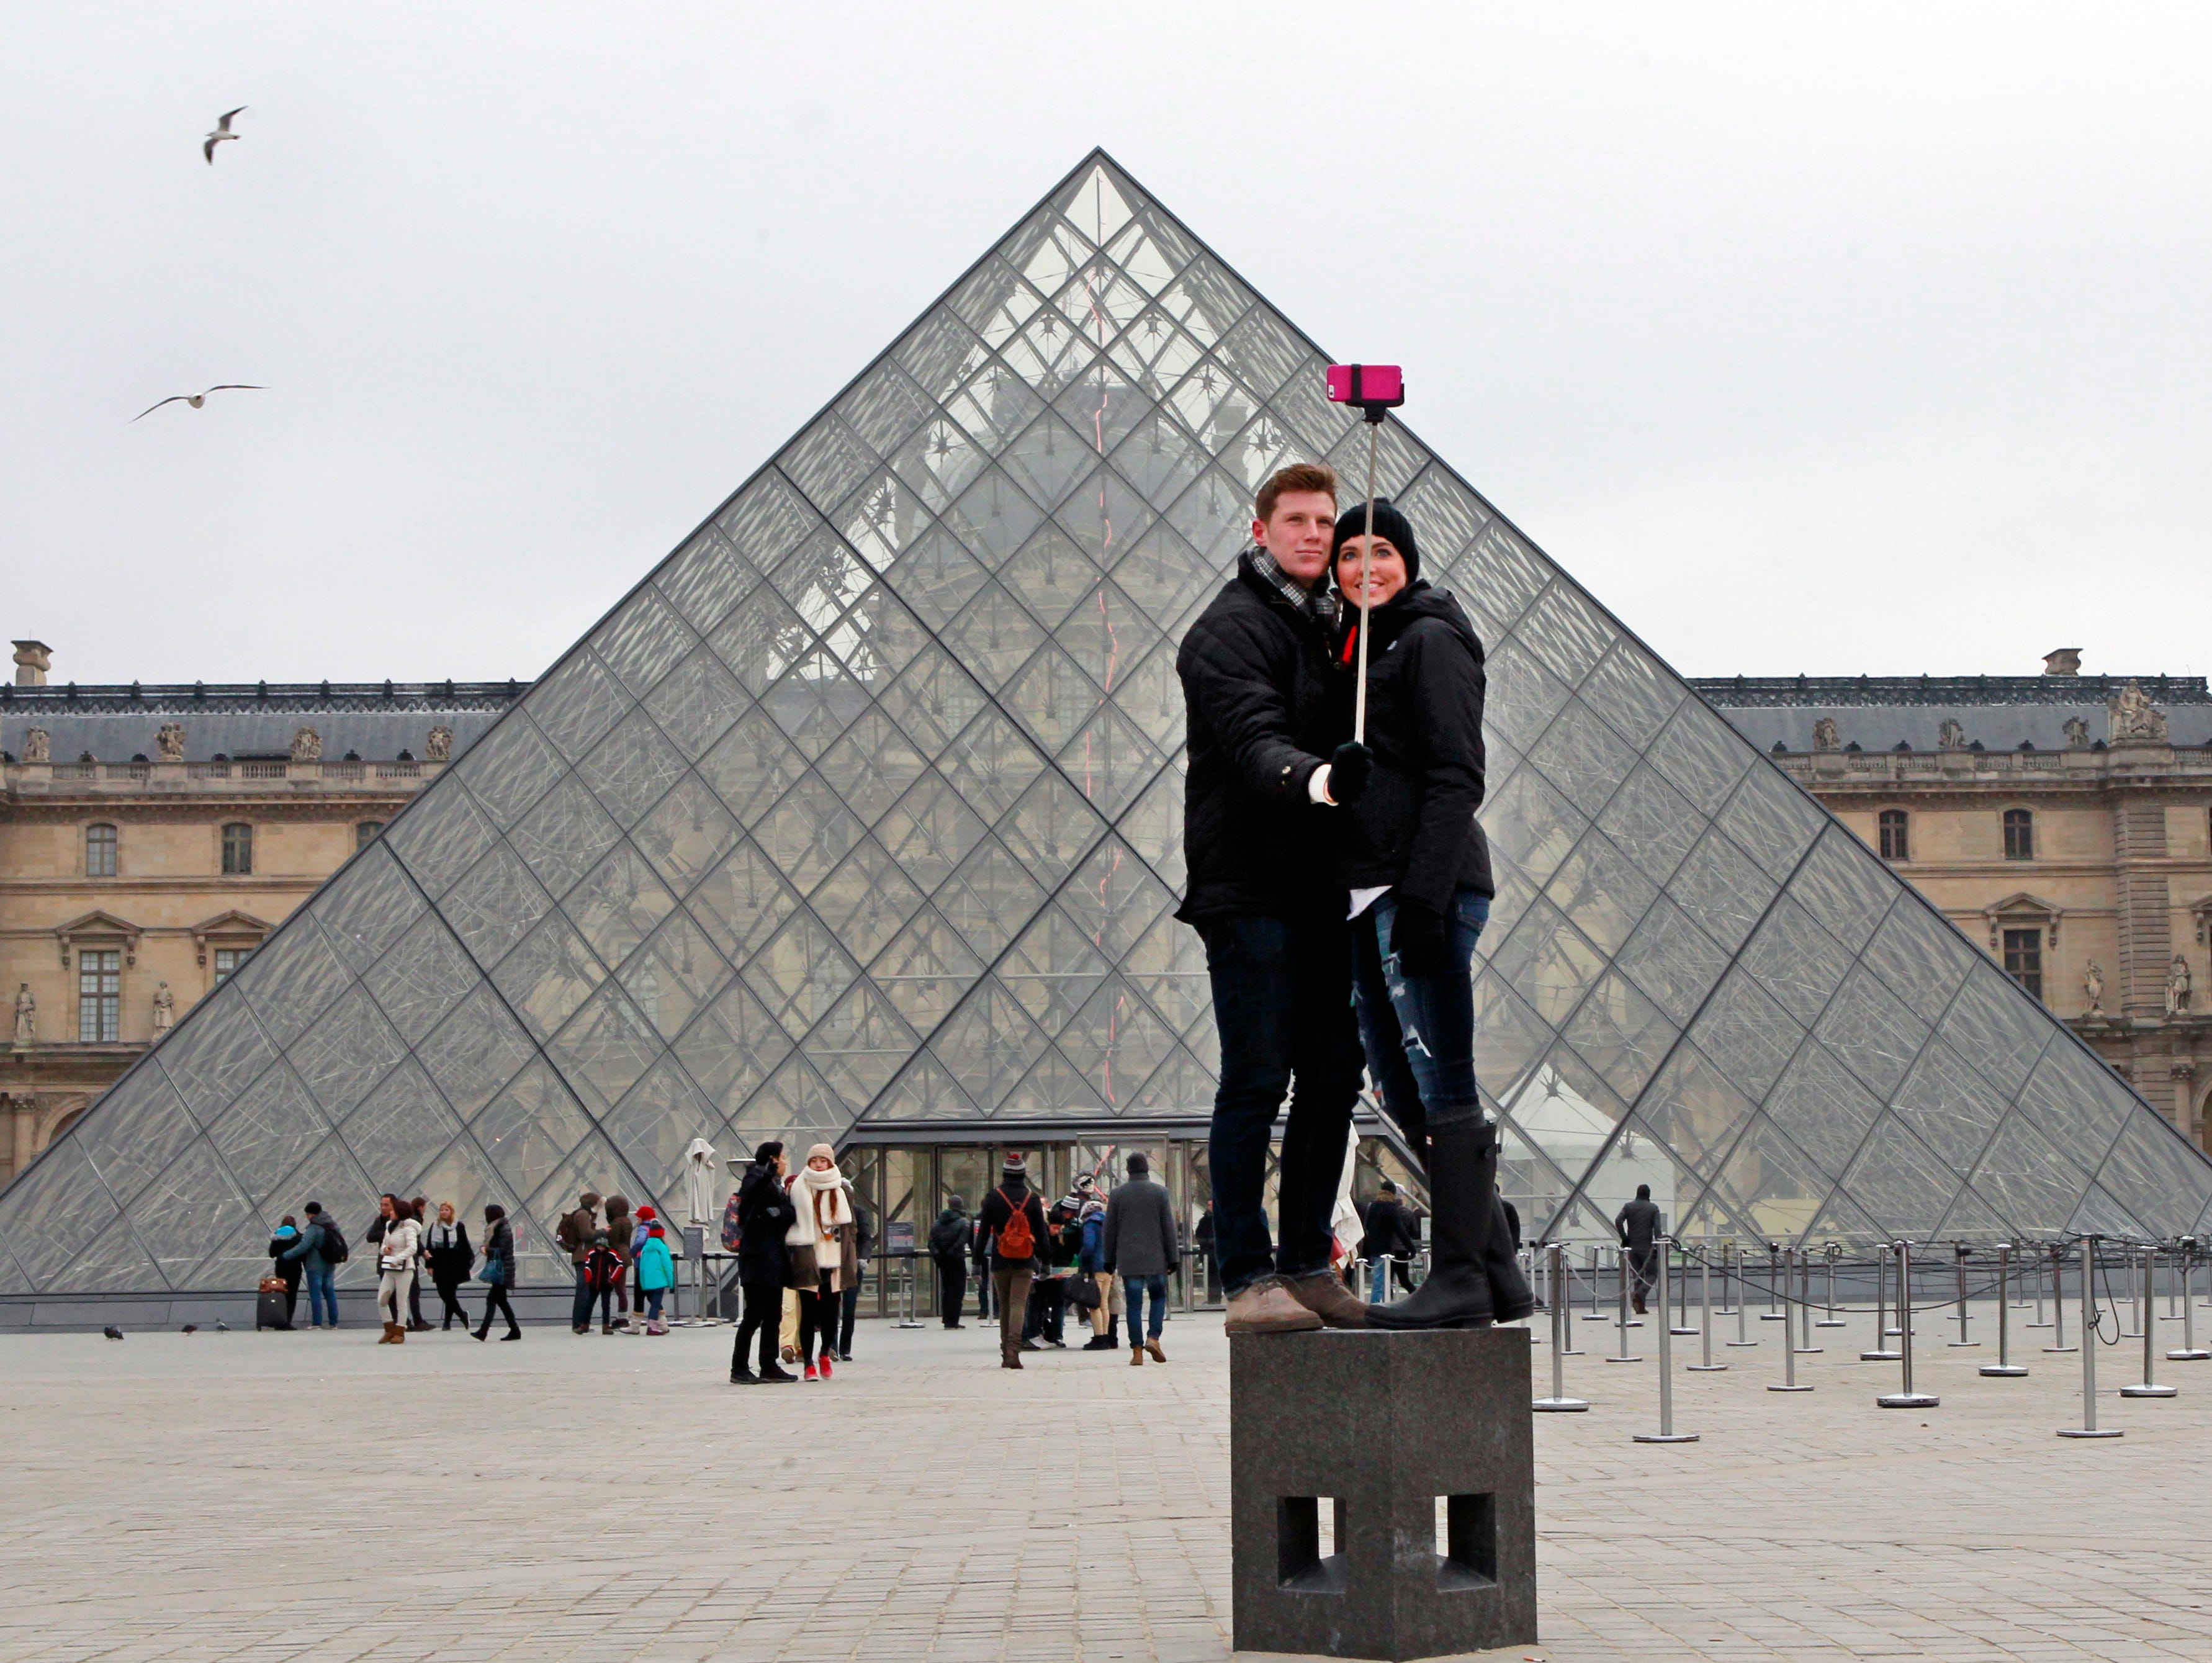 FILE - In this Tuesday, Jan. 6, 2015, Chris Baker and Jennifer Hinson from Nashville, Tennessee, use a selfie stick in front of the Louvre Pyramide in Paris. The world's most visited museum, the Louvre in Paris registered 10.2 million visitors in 2018, a record boosted by a rise of foreign tourists and pop star Beyonce's video paying tribute to the Mona Lisa and others world-famous artworks. (AP Photo/Remy de la Mauviniere, File) ORG XMIT: PAR101